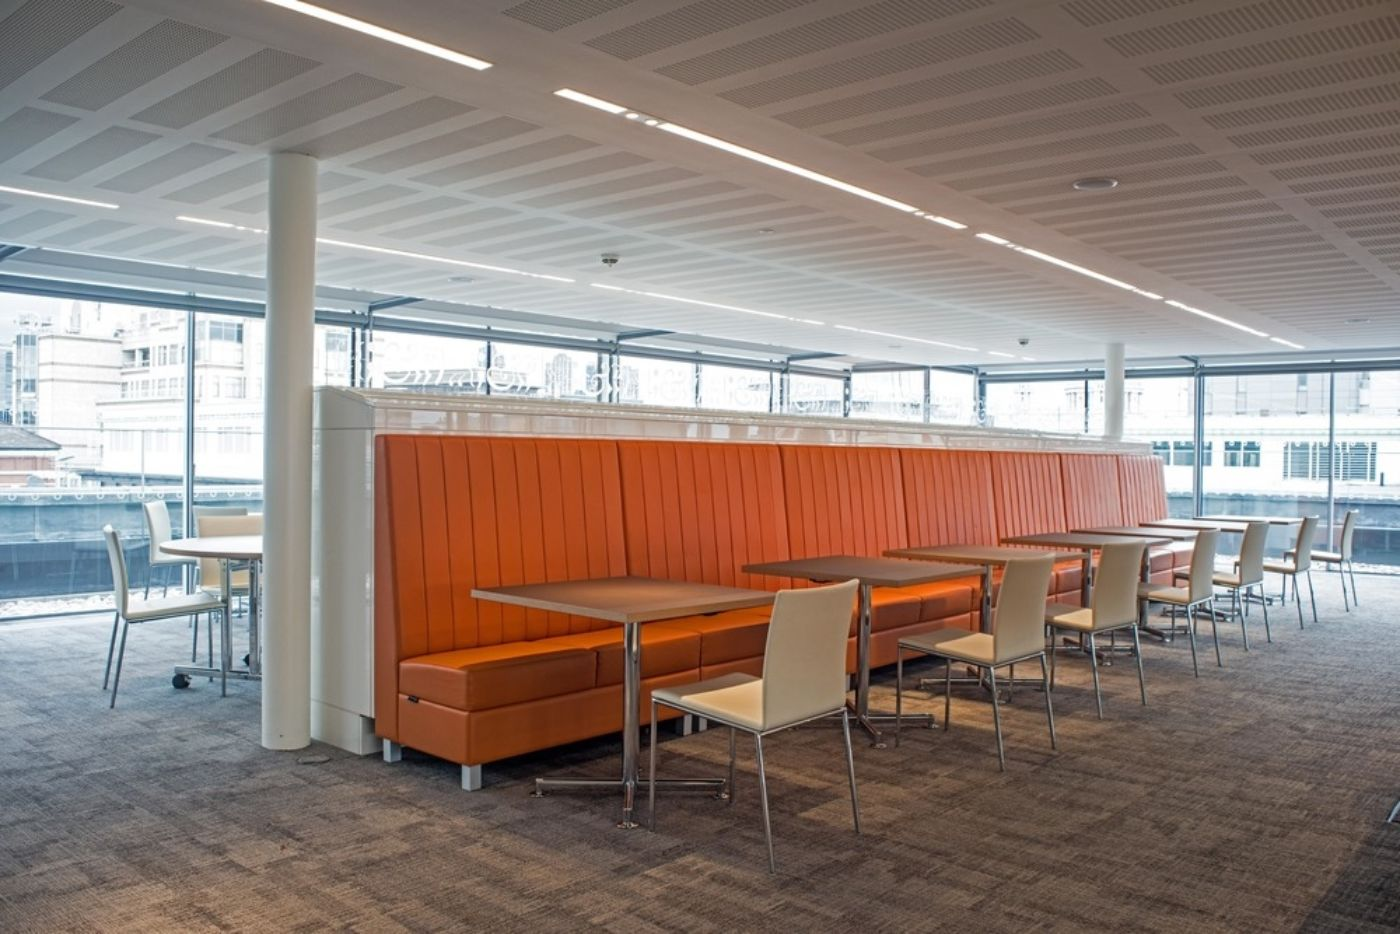 Bright and colourful seating in office dining area